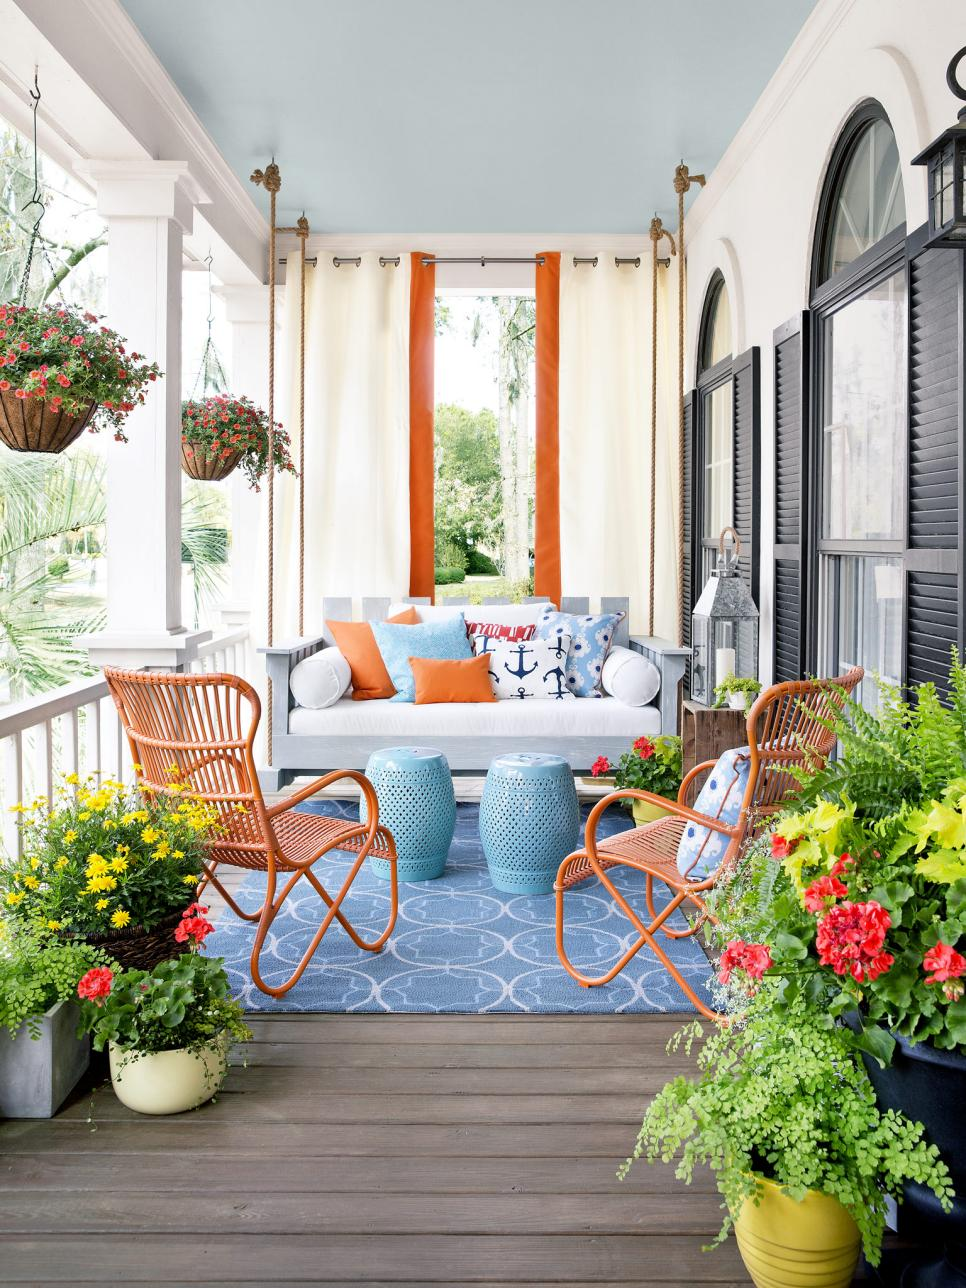 Patio ideas for style living 24